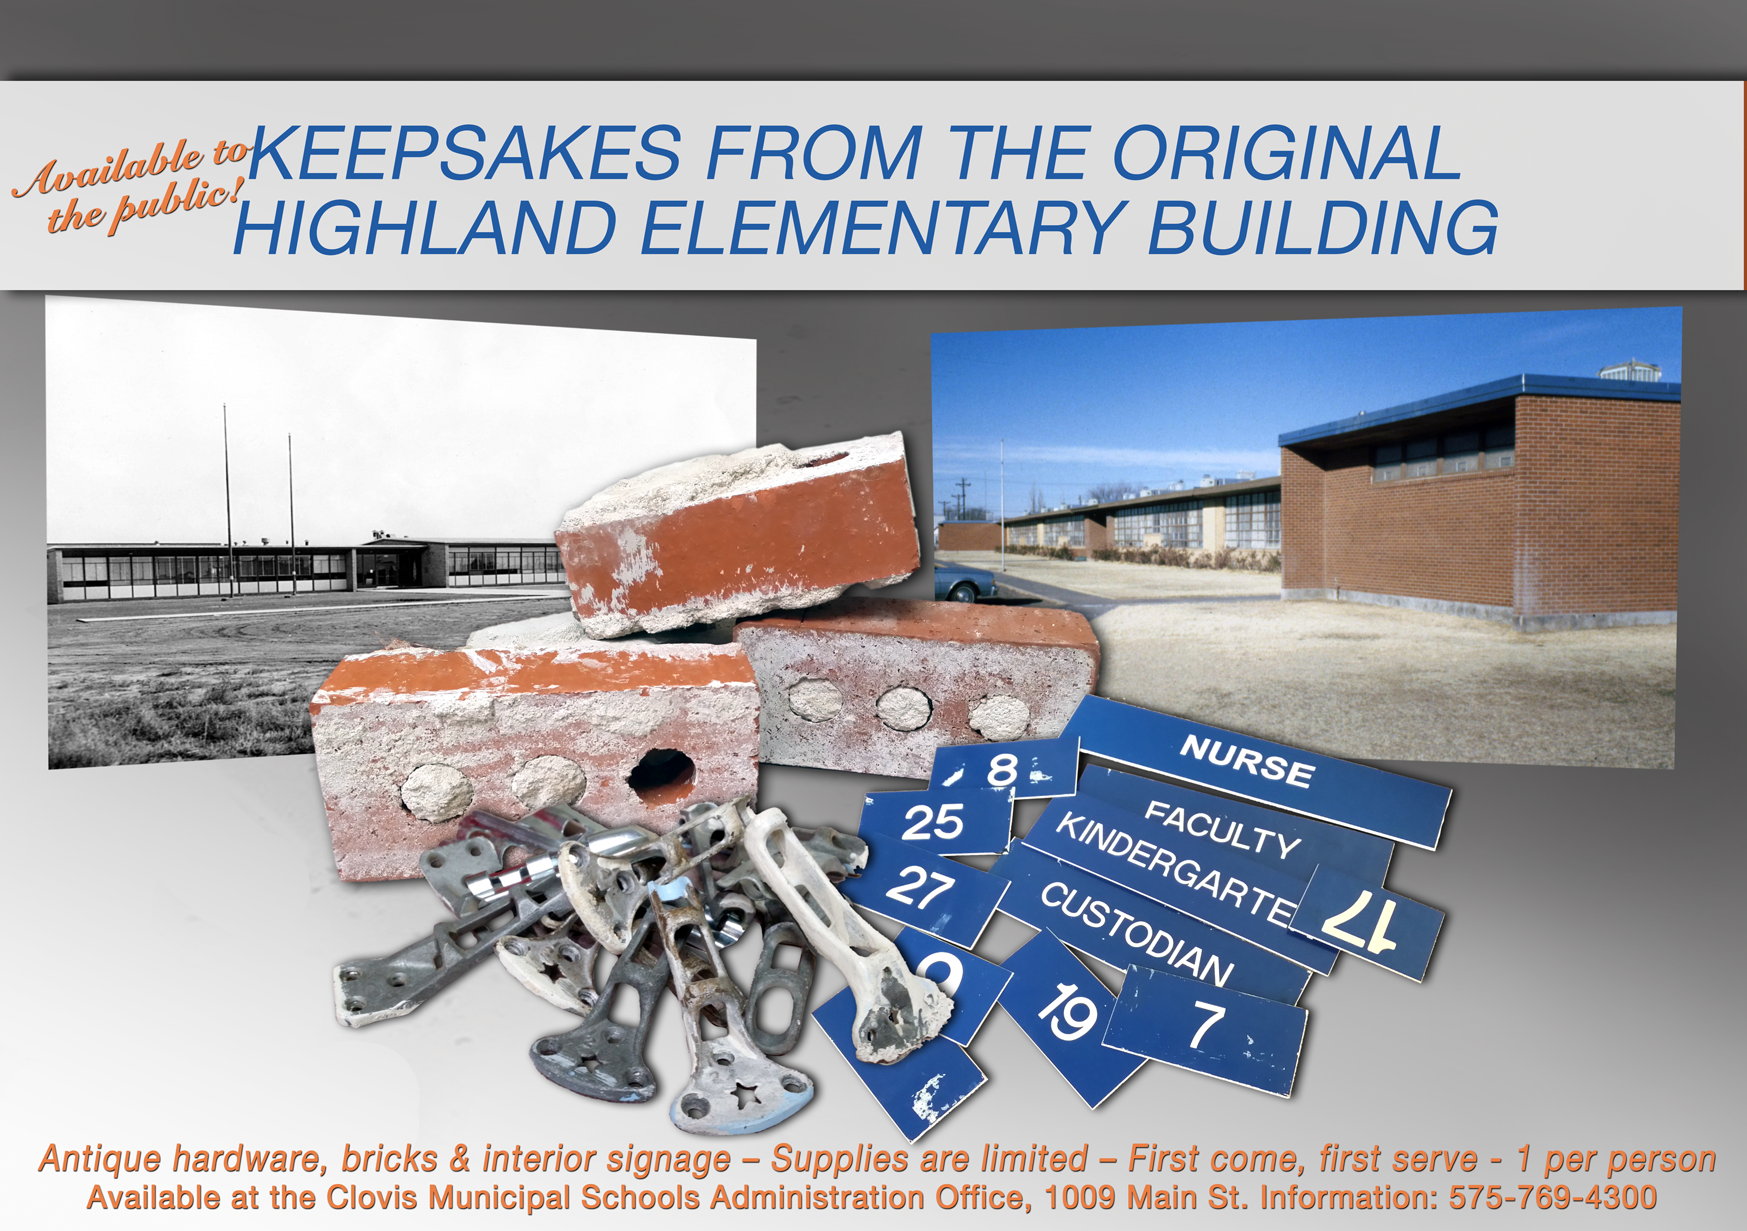 Image with text announcing Highland building keepsakes